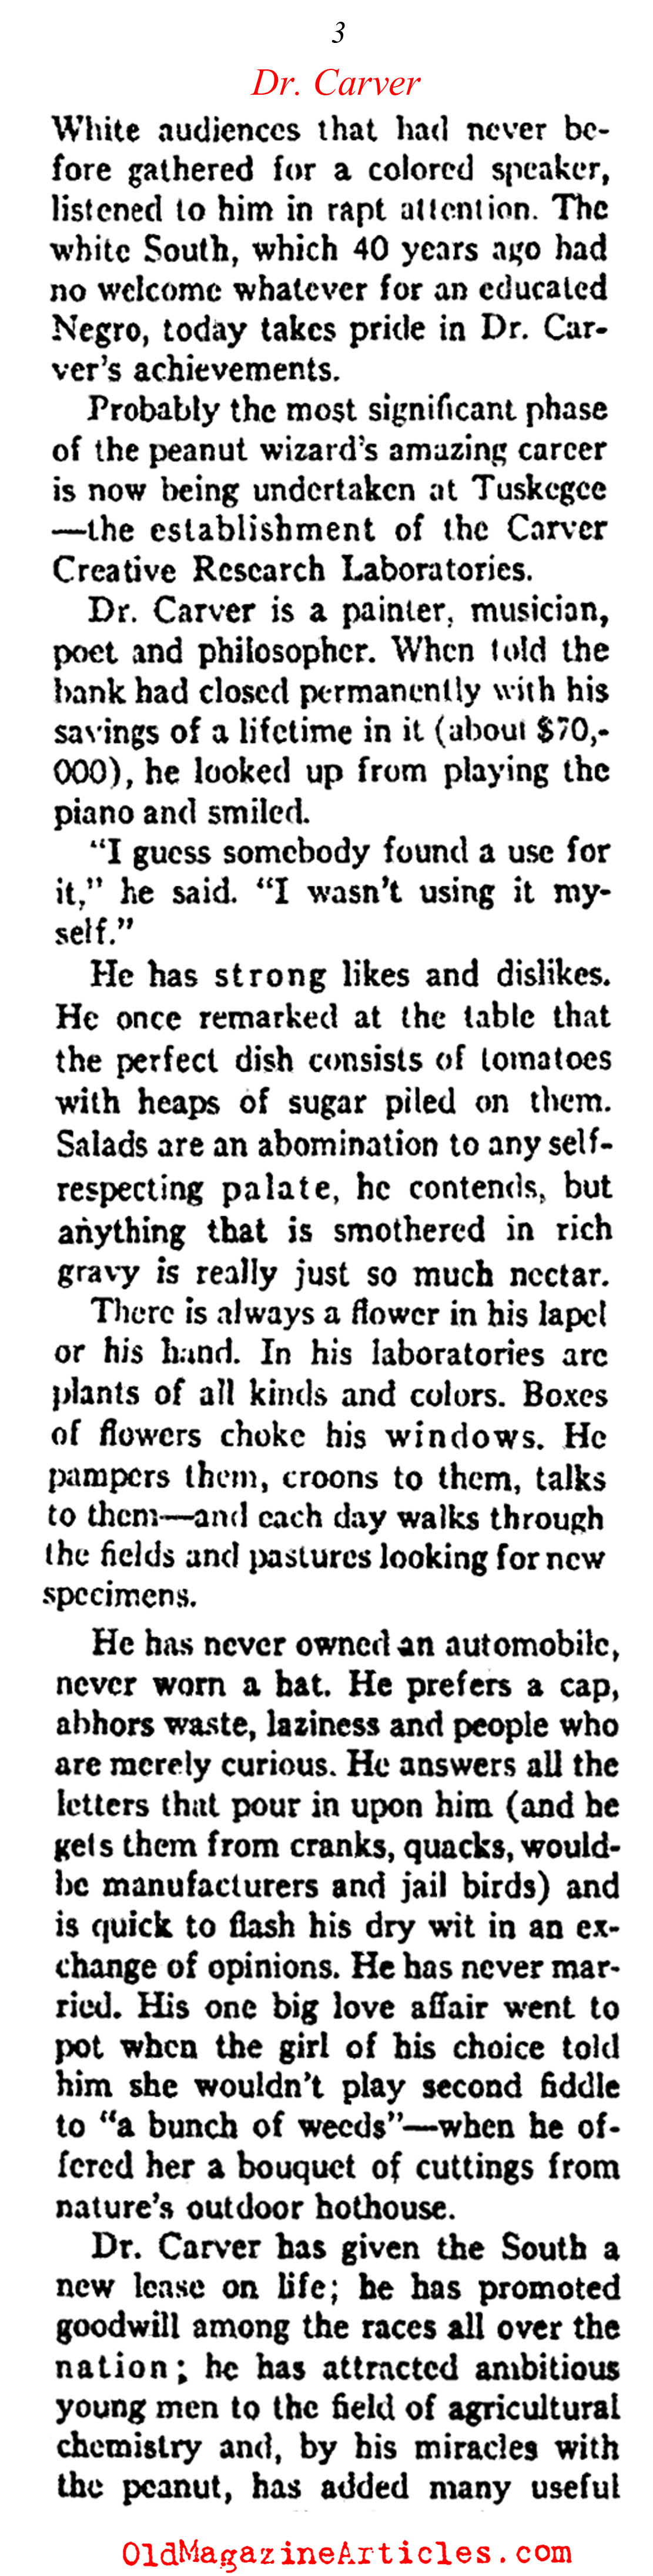 An Interview with Dr. George Washington Carver (Ken Magazine, 1938)